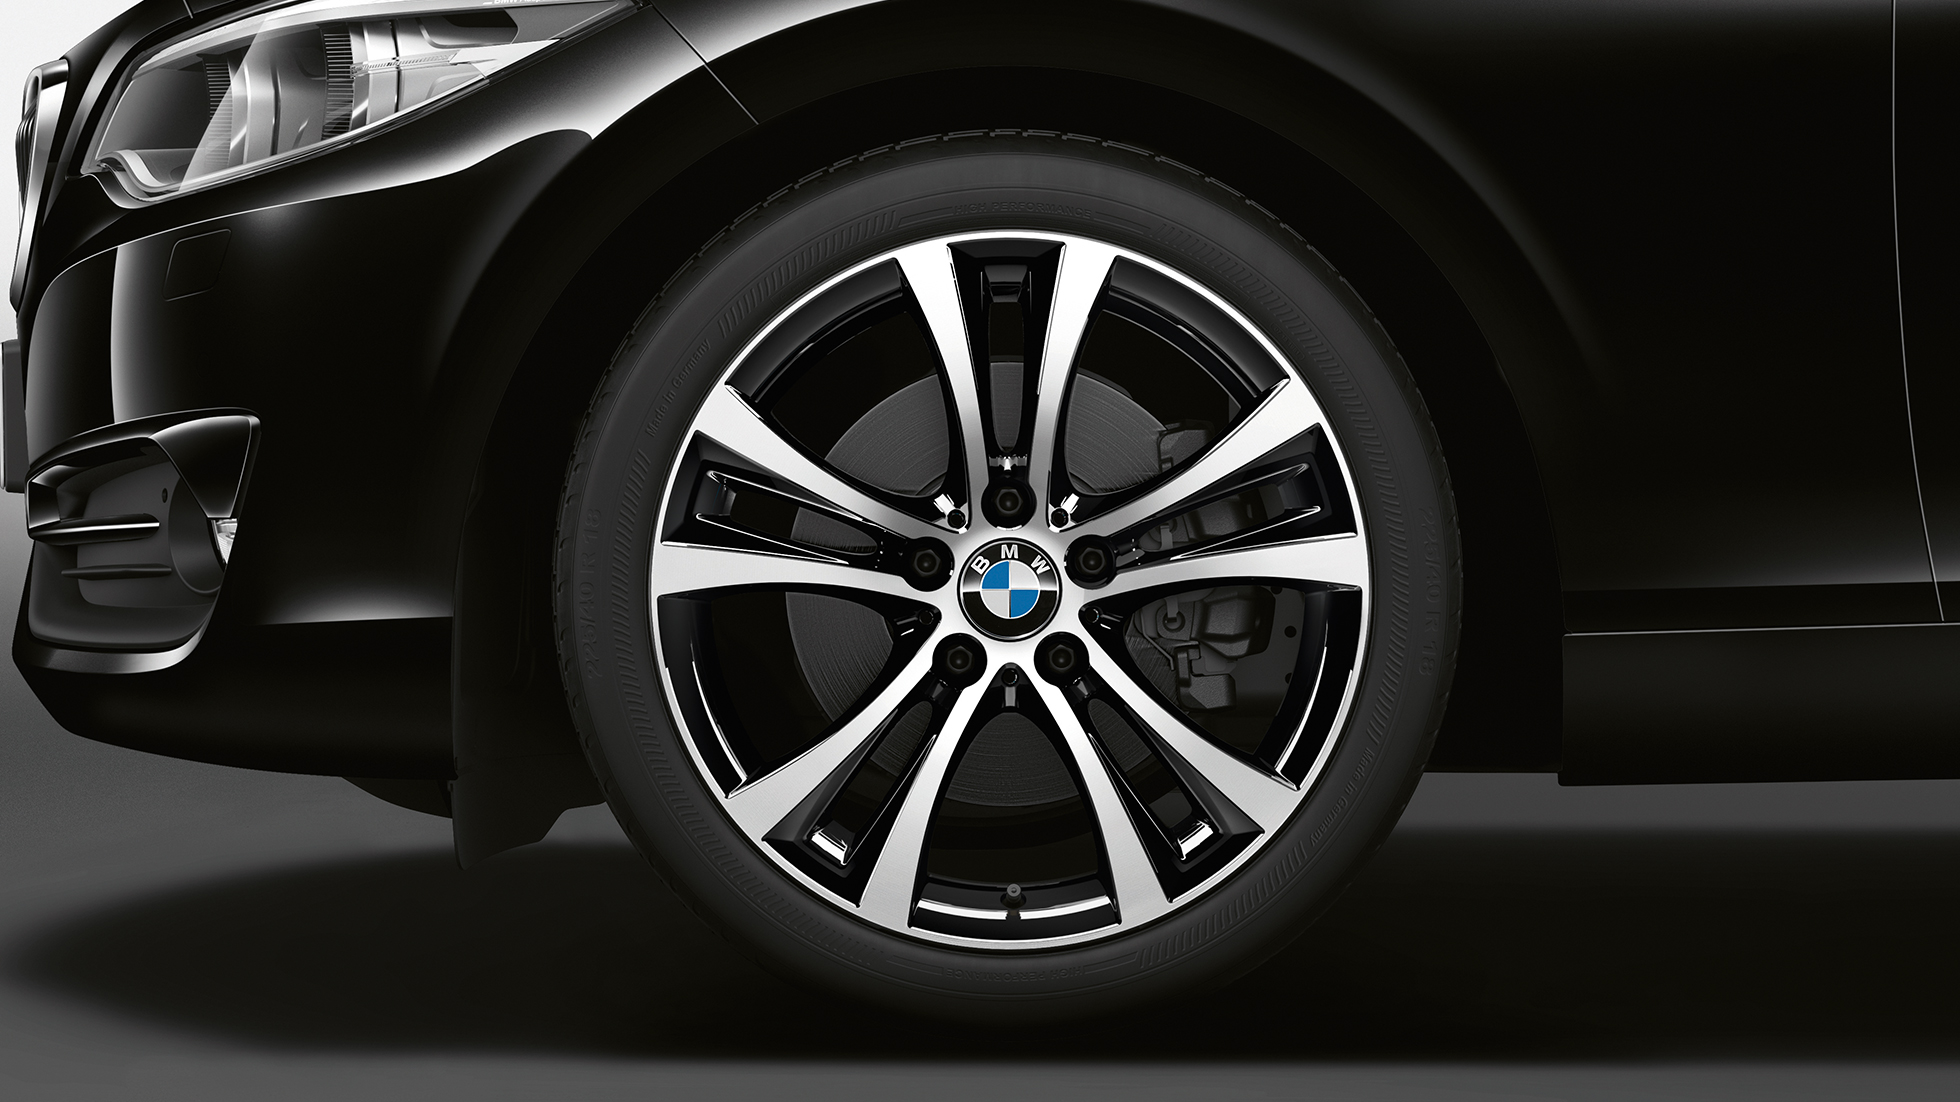 BMW 2 Series Coupé, Model Sport Line wheels